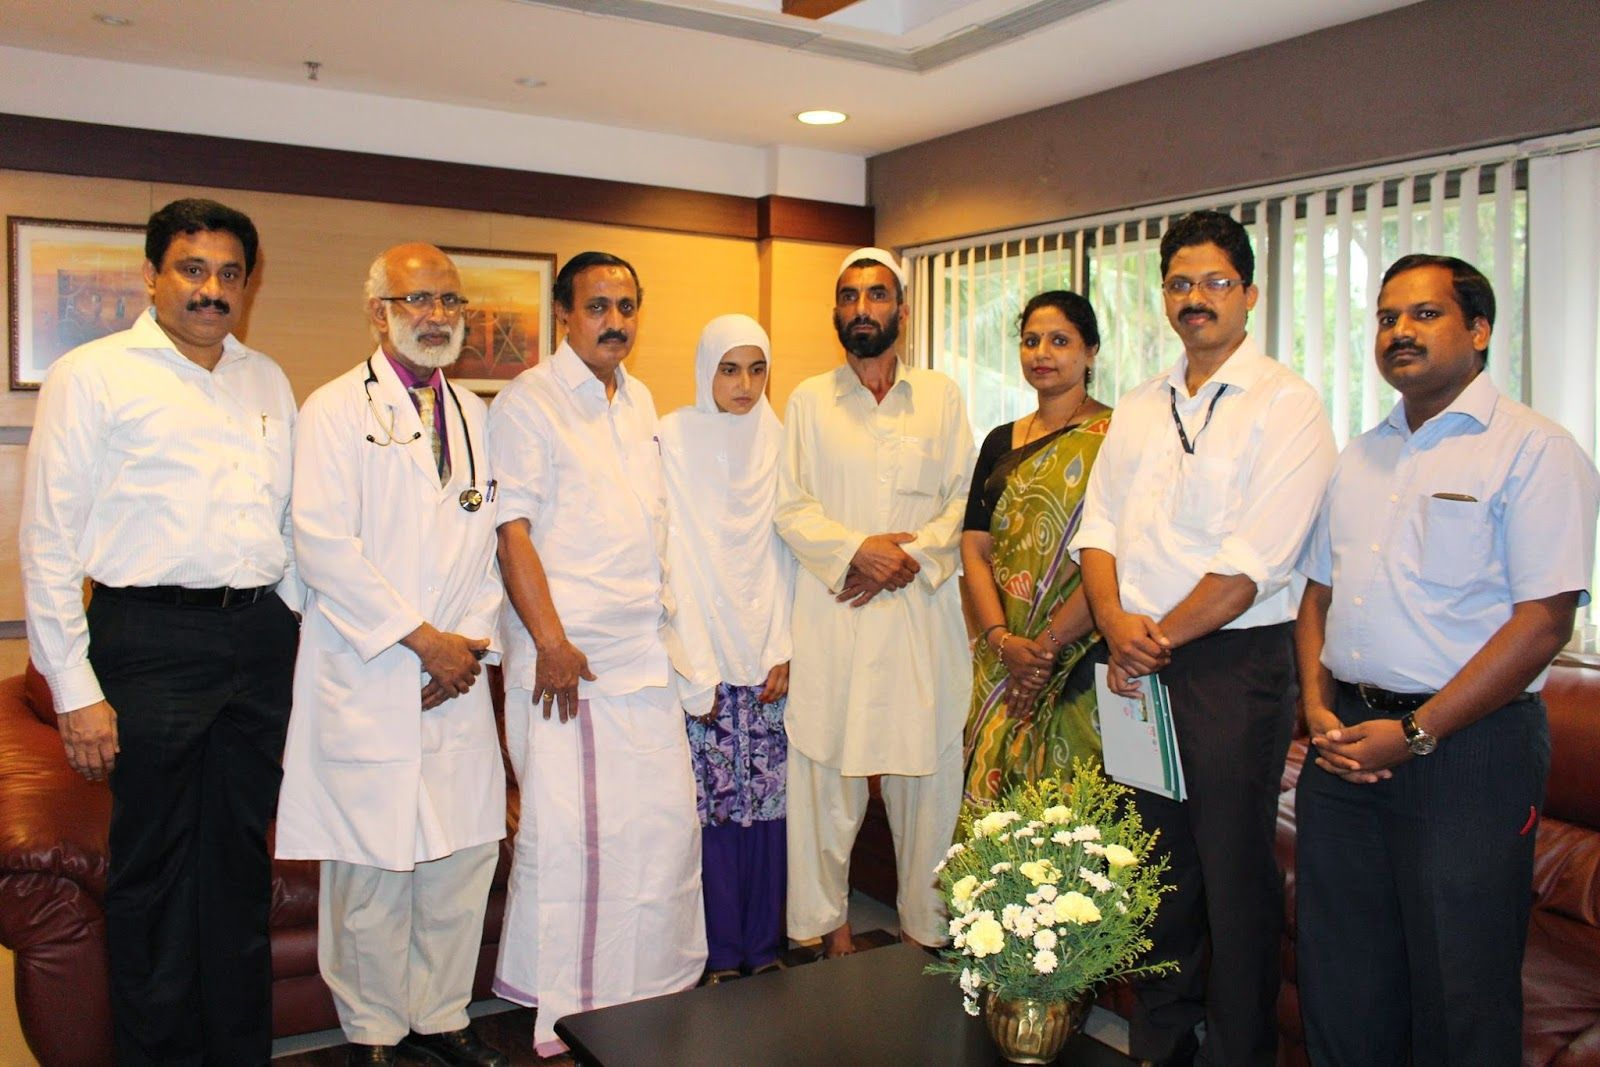 Malabar Institute Of Medical Sciences Ltd: Dr. Moopens' Foundation offers Free Heart Surgery for Afghan Girl in MIMS Calicut